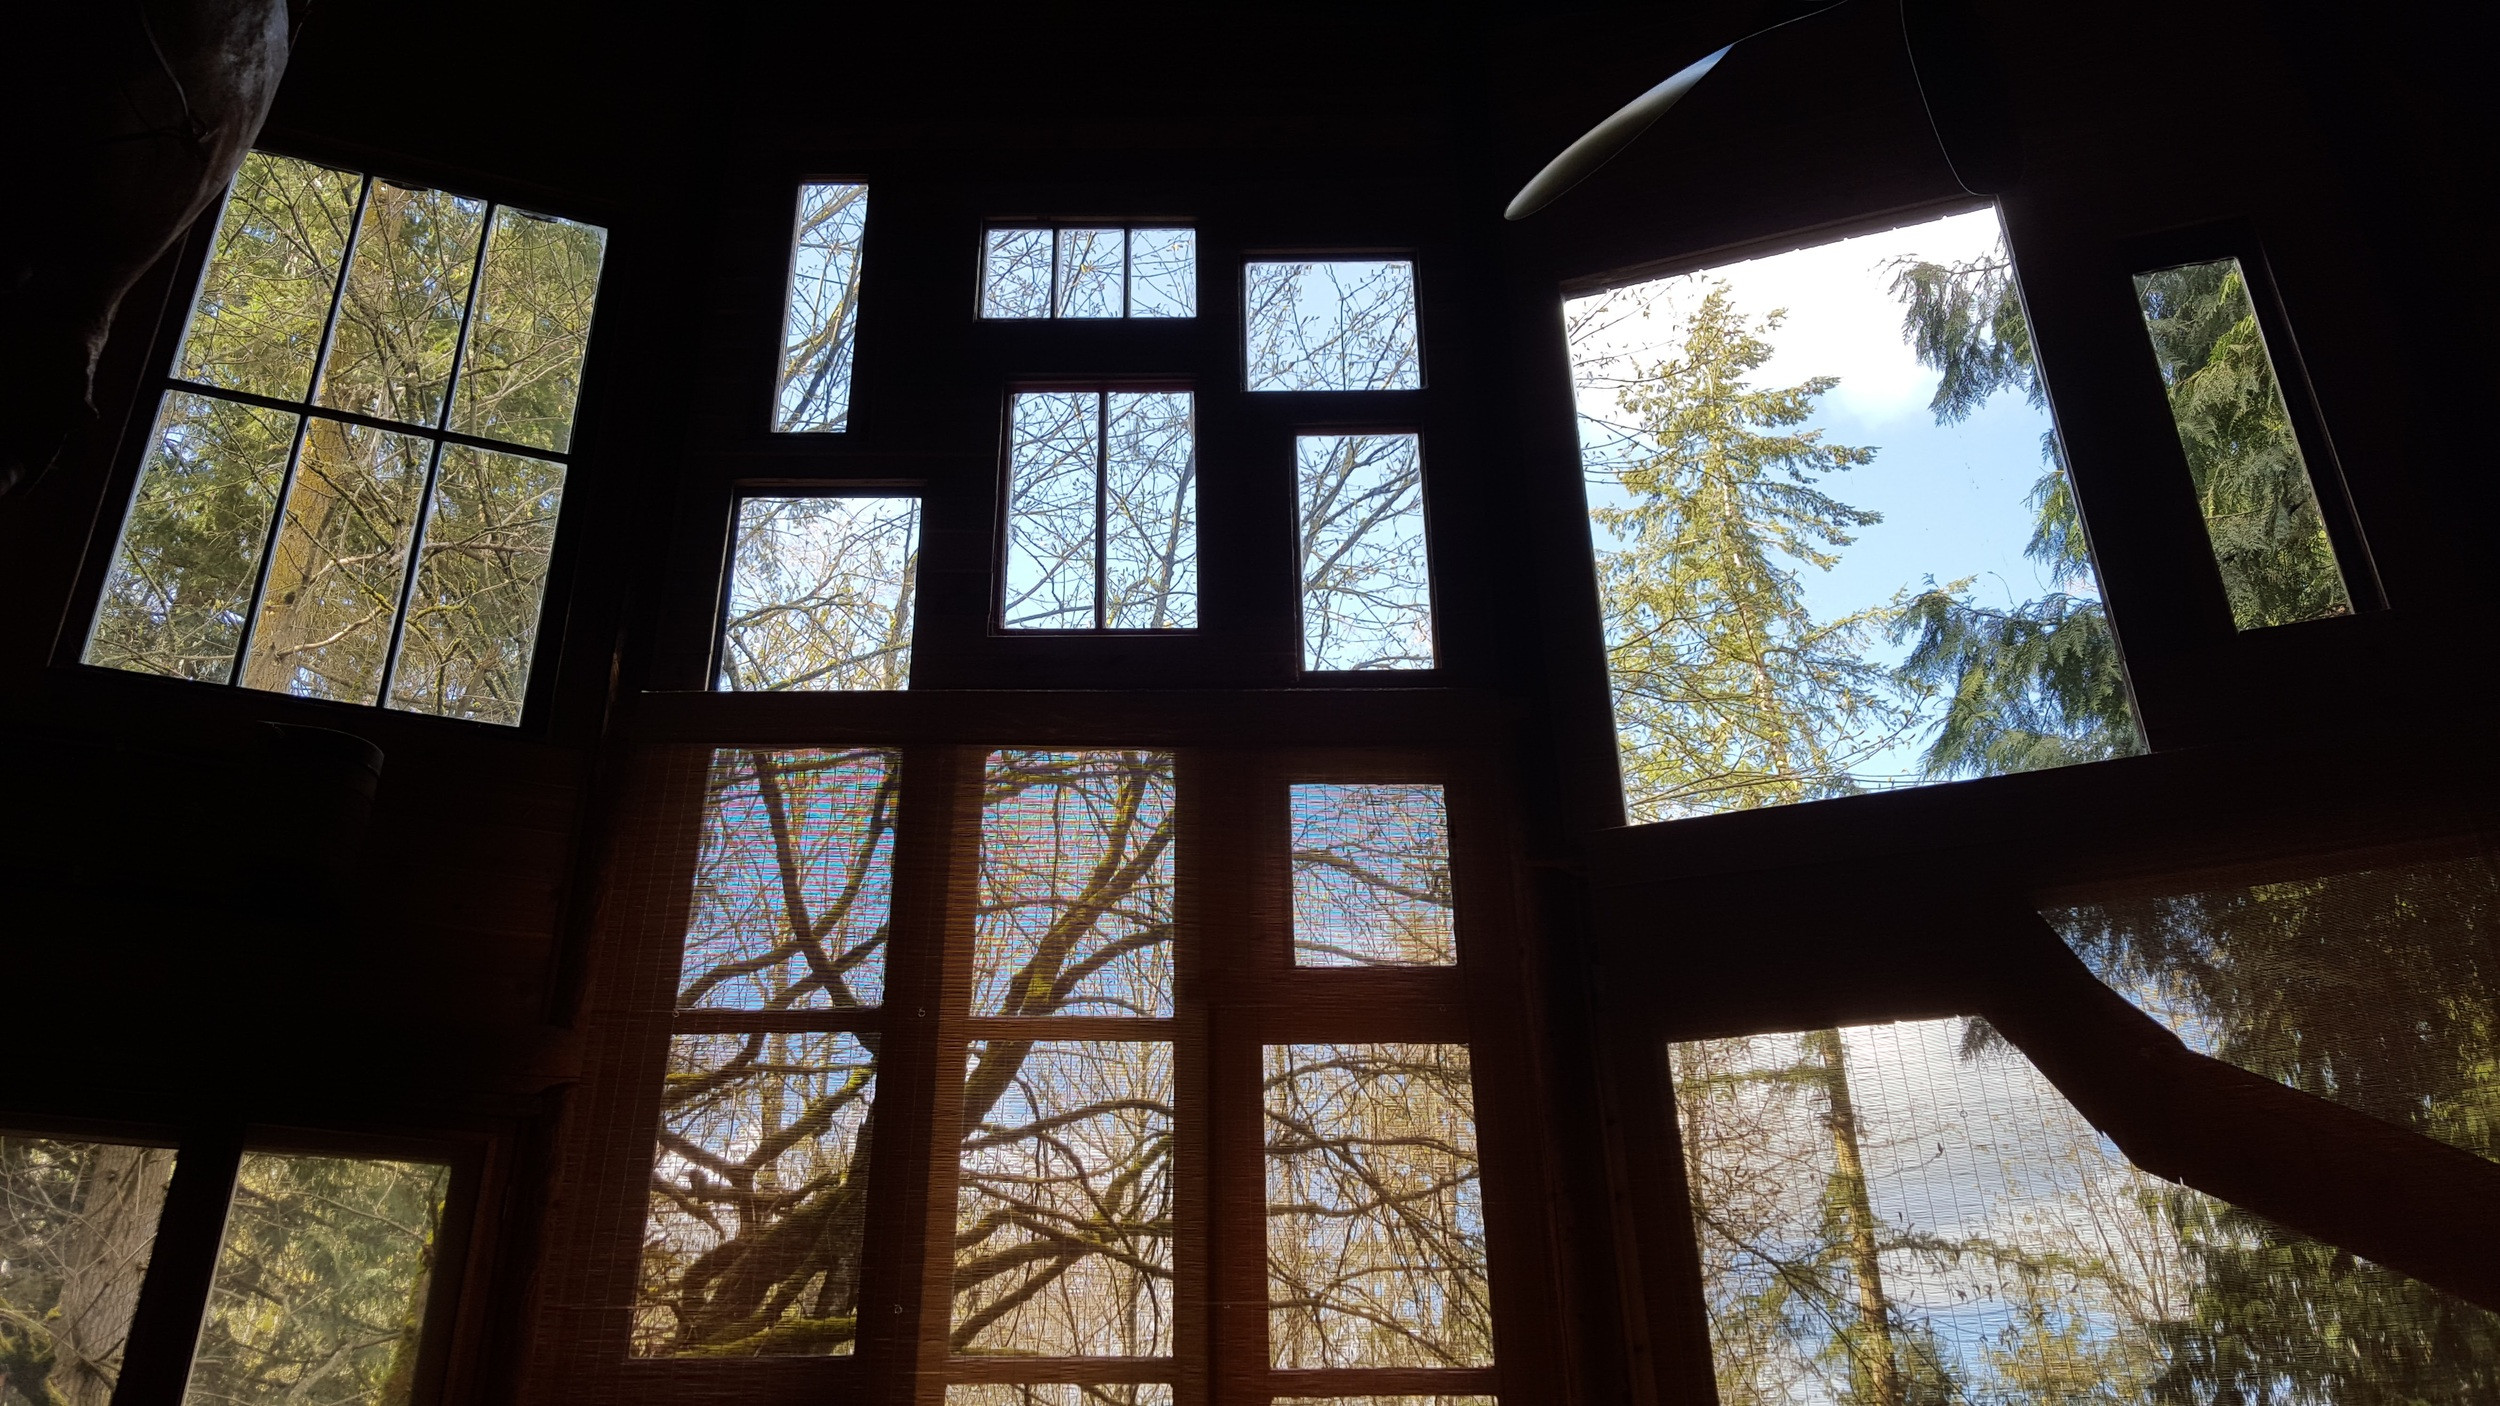 The large windows of the circular log cabin let in tons of light to its open floor plan.